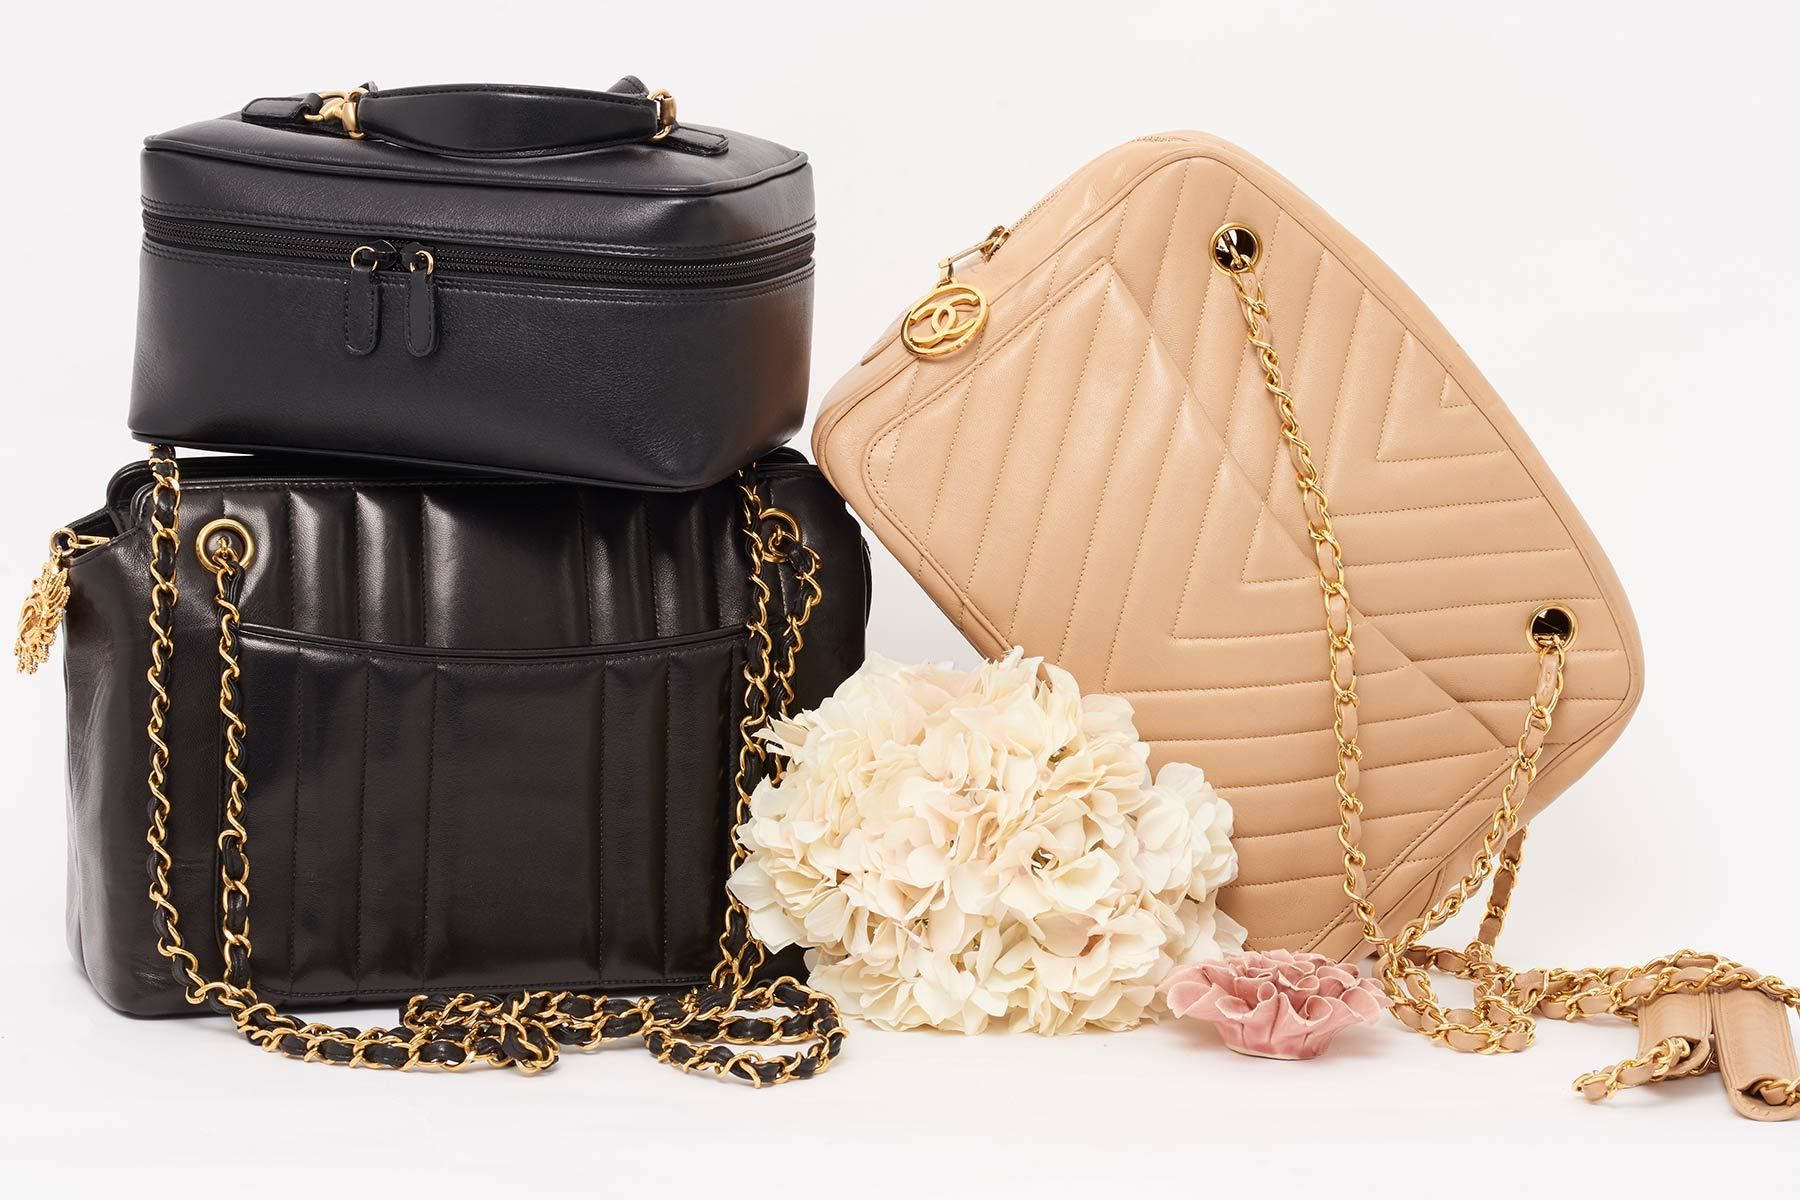 eee09fde032b Shop the finest curated vintage designer bag online. We specialise in  vintage preowned Chanel bags